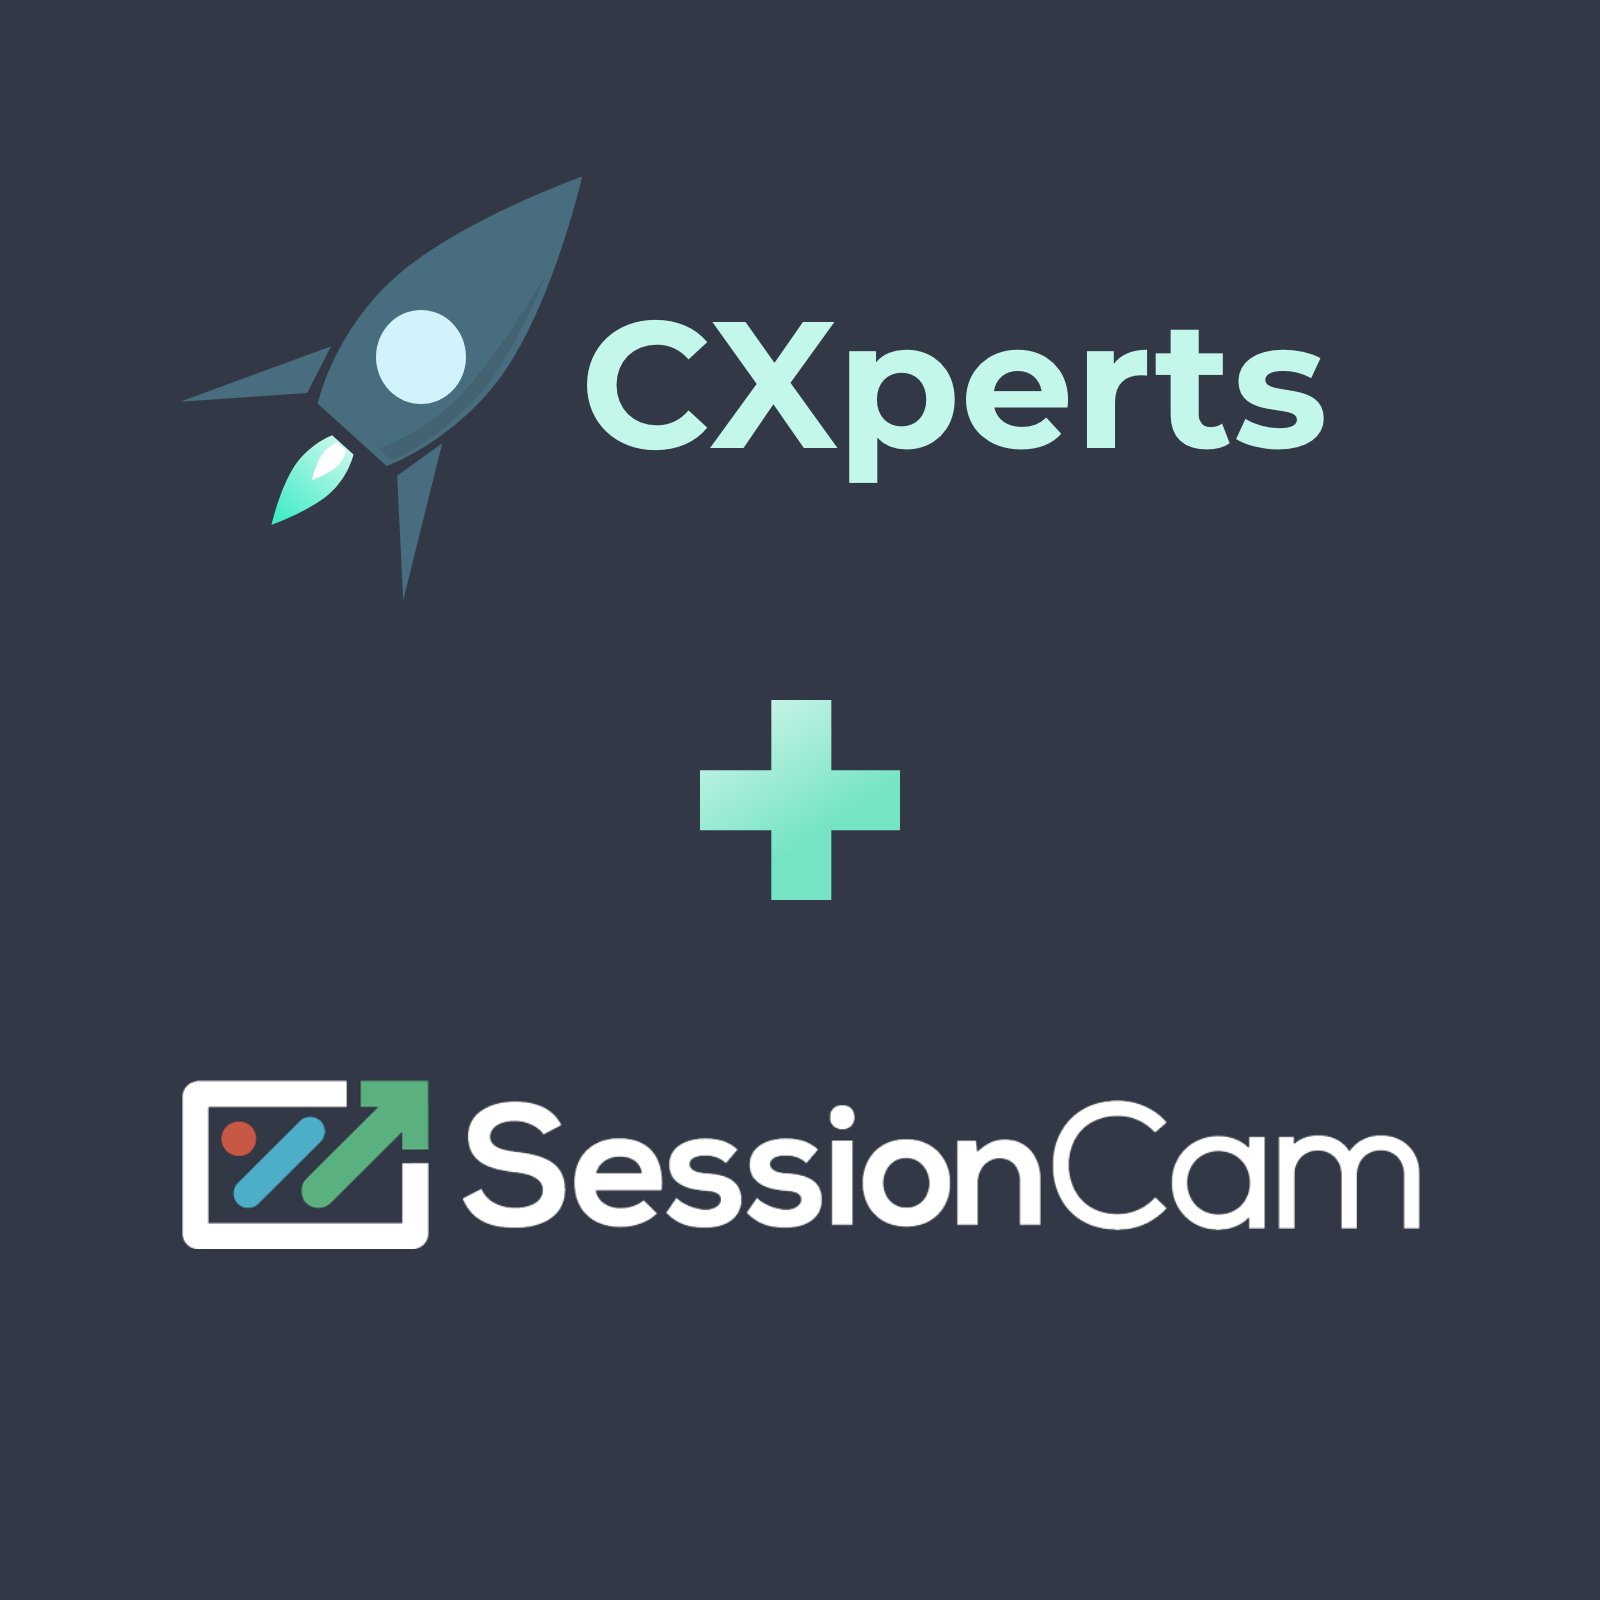 CXperts Partners with SessionCam UX Session Replay Software